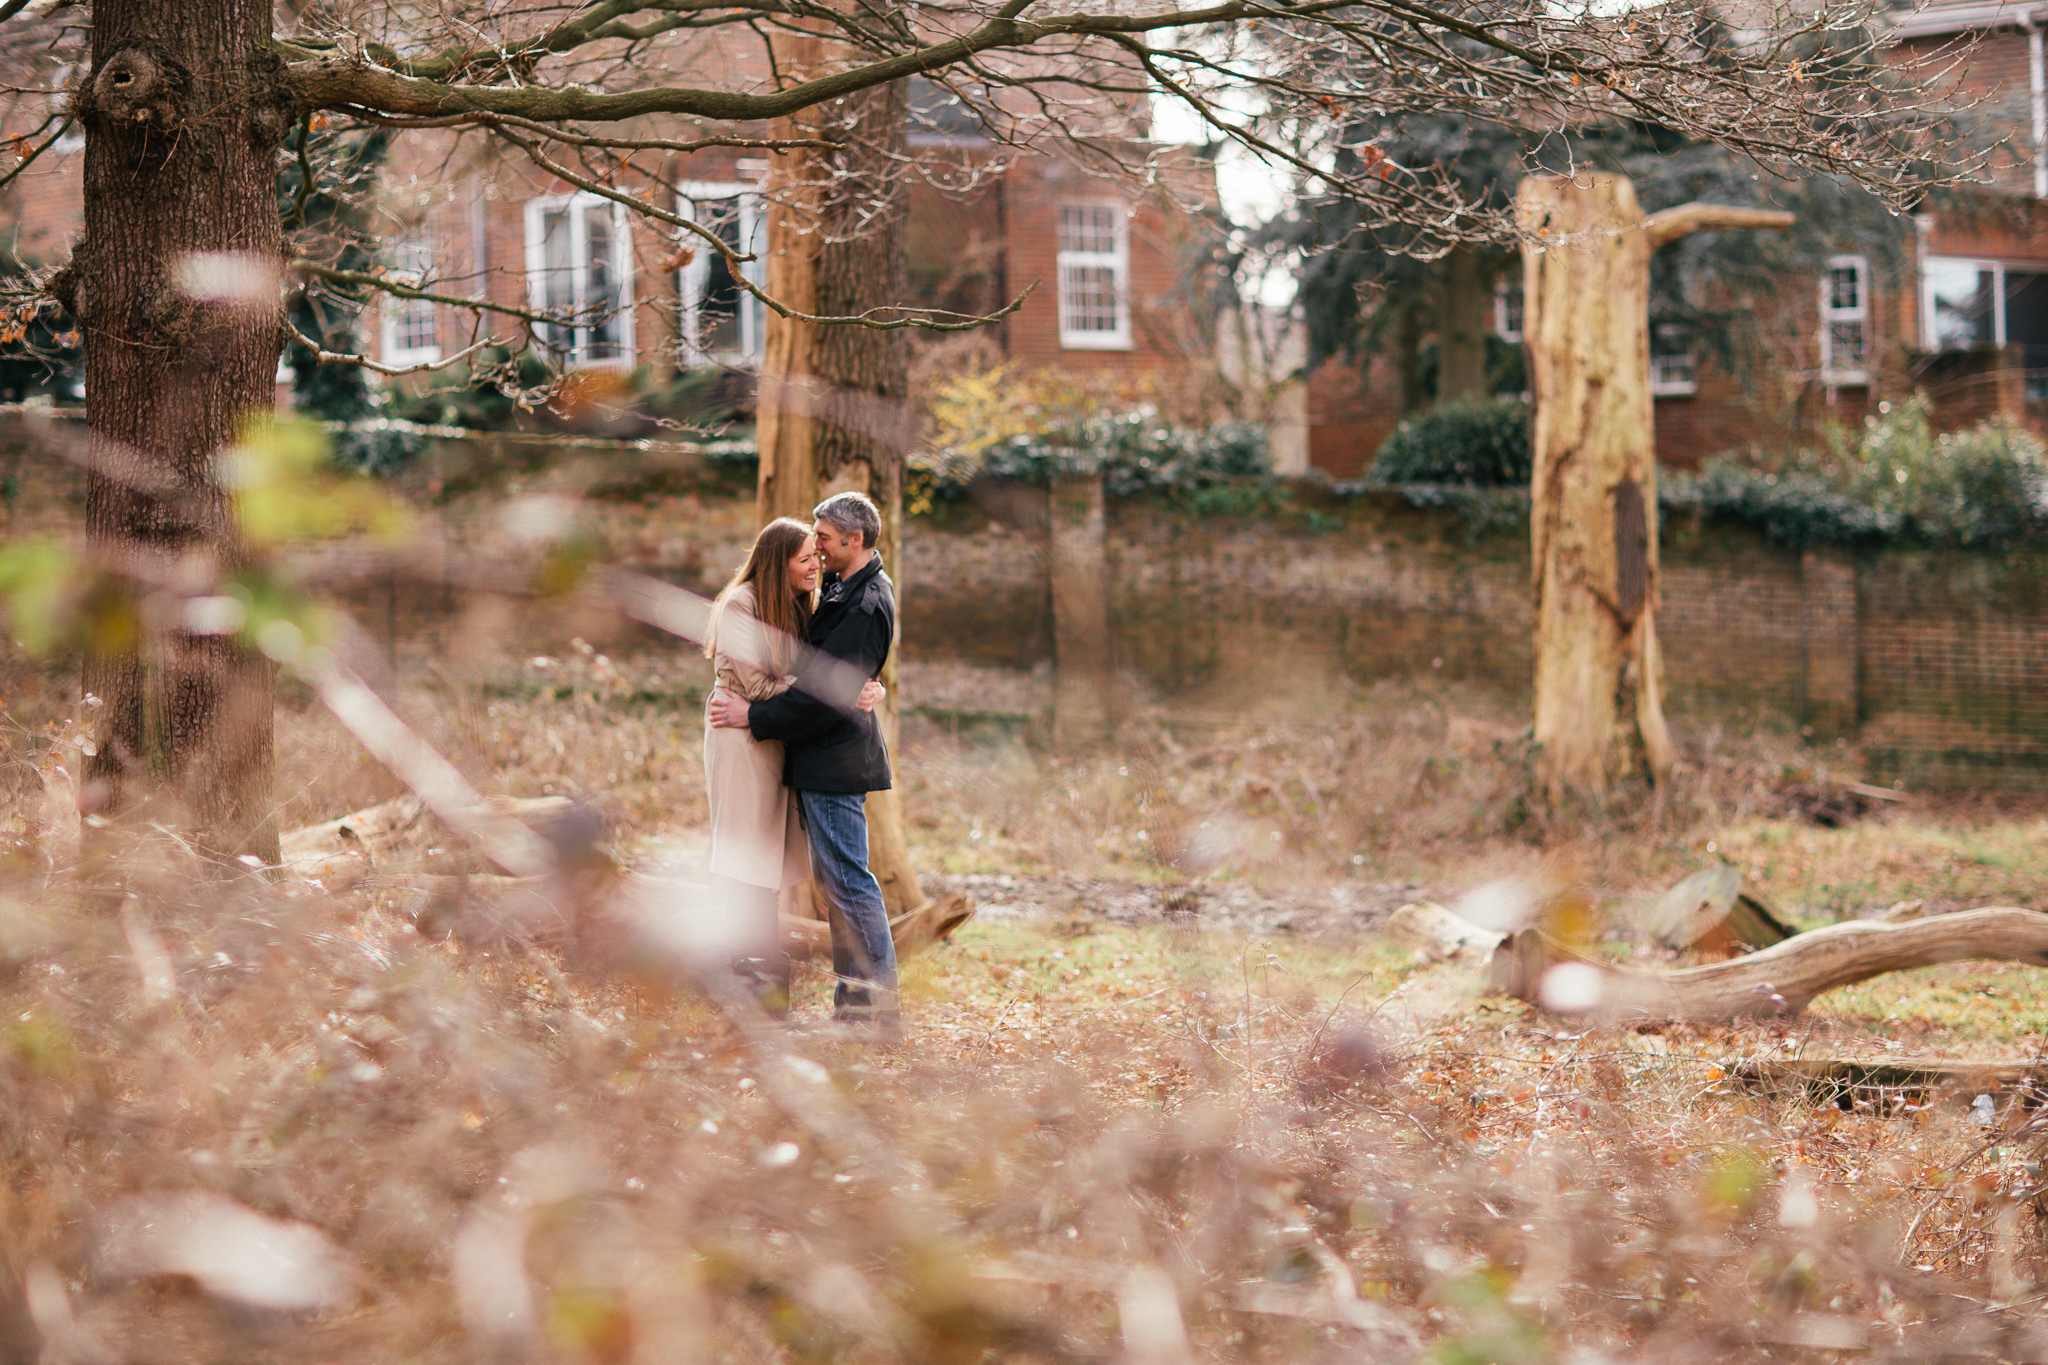 Richmond Park Engagement Photography Wedding Photographer Surrey (41 of 54).jpg